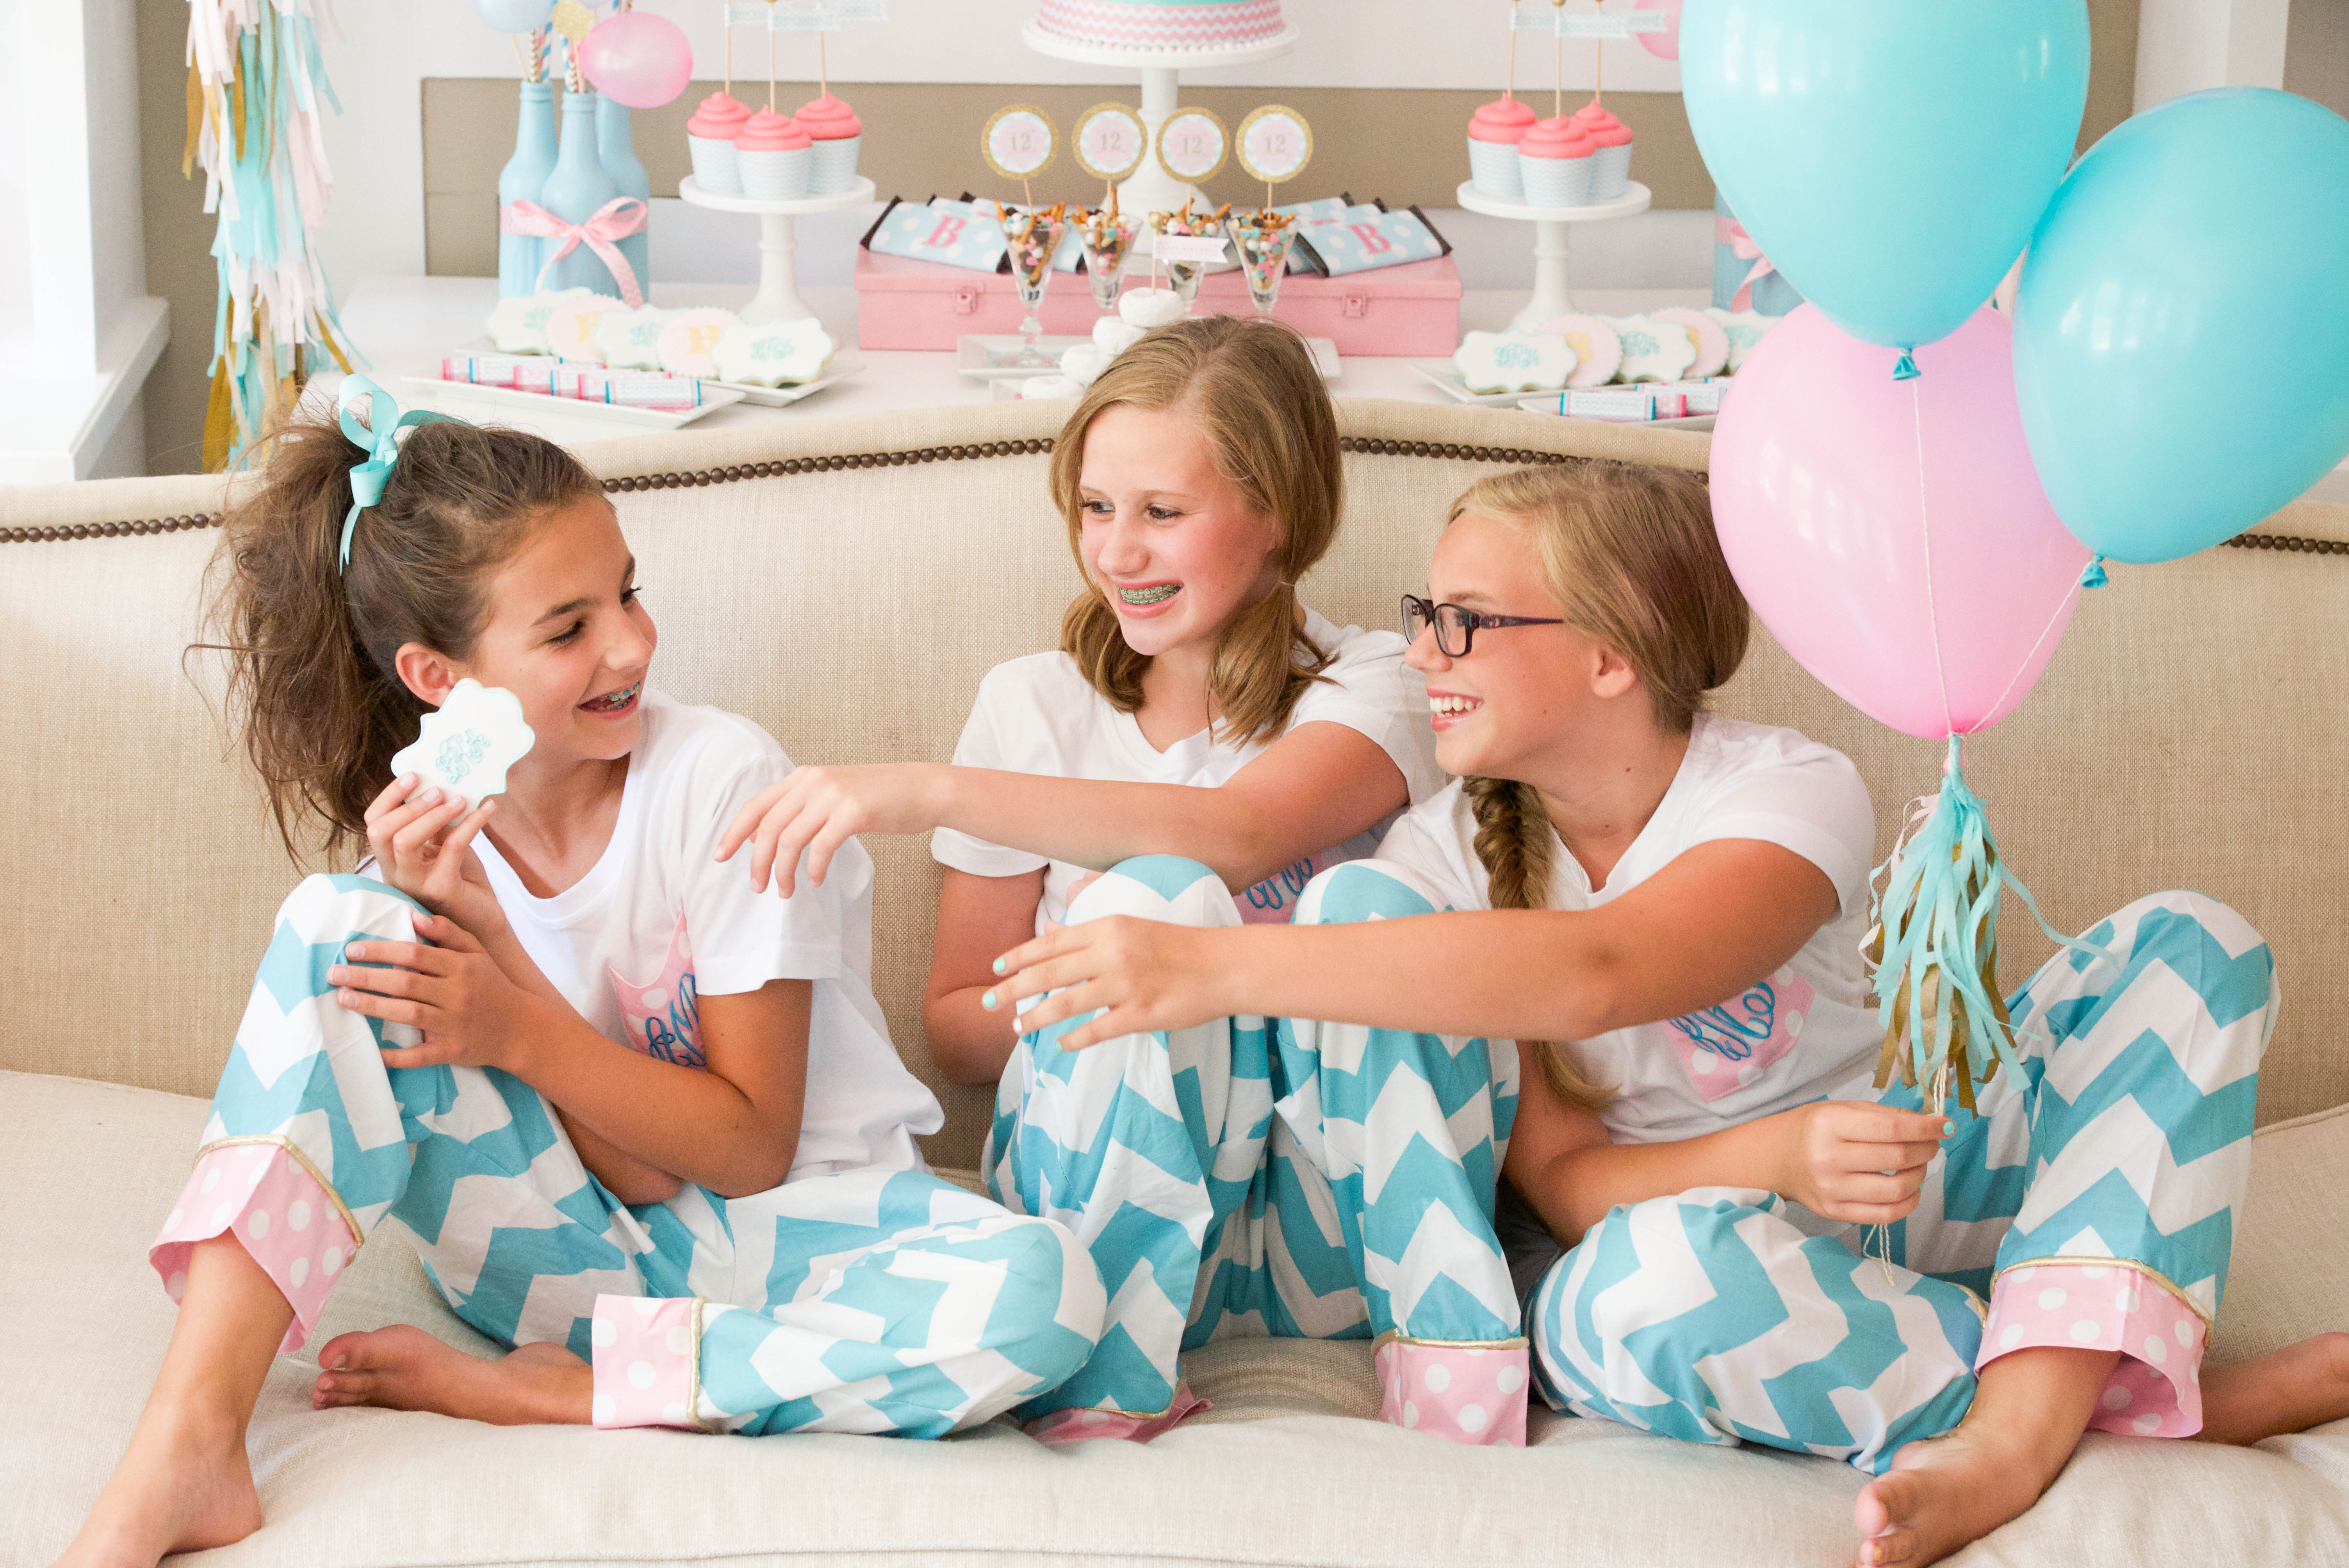 Girl Party Games Birthday Party Games for Girls